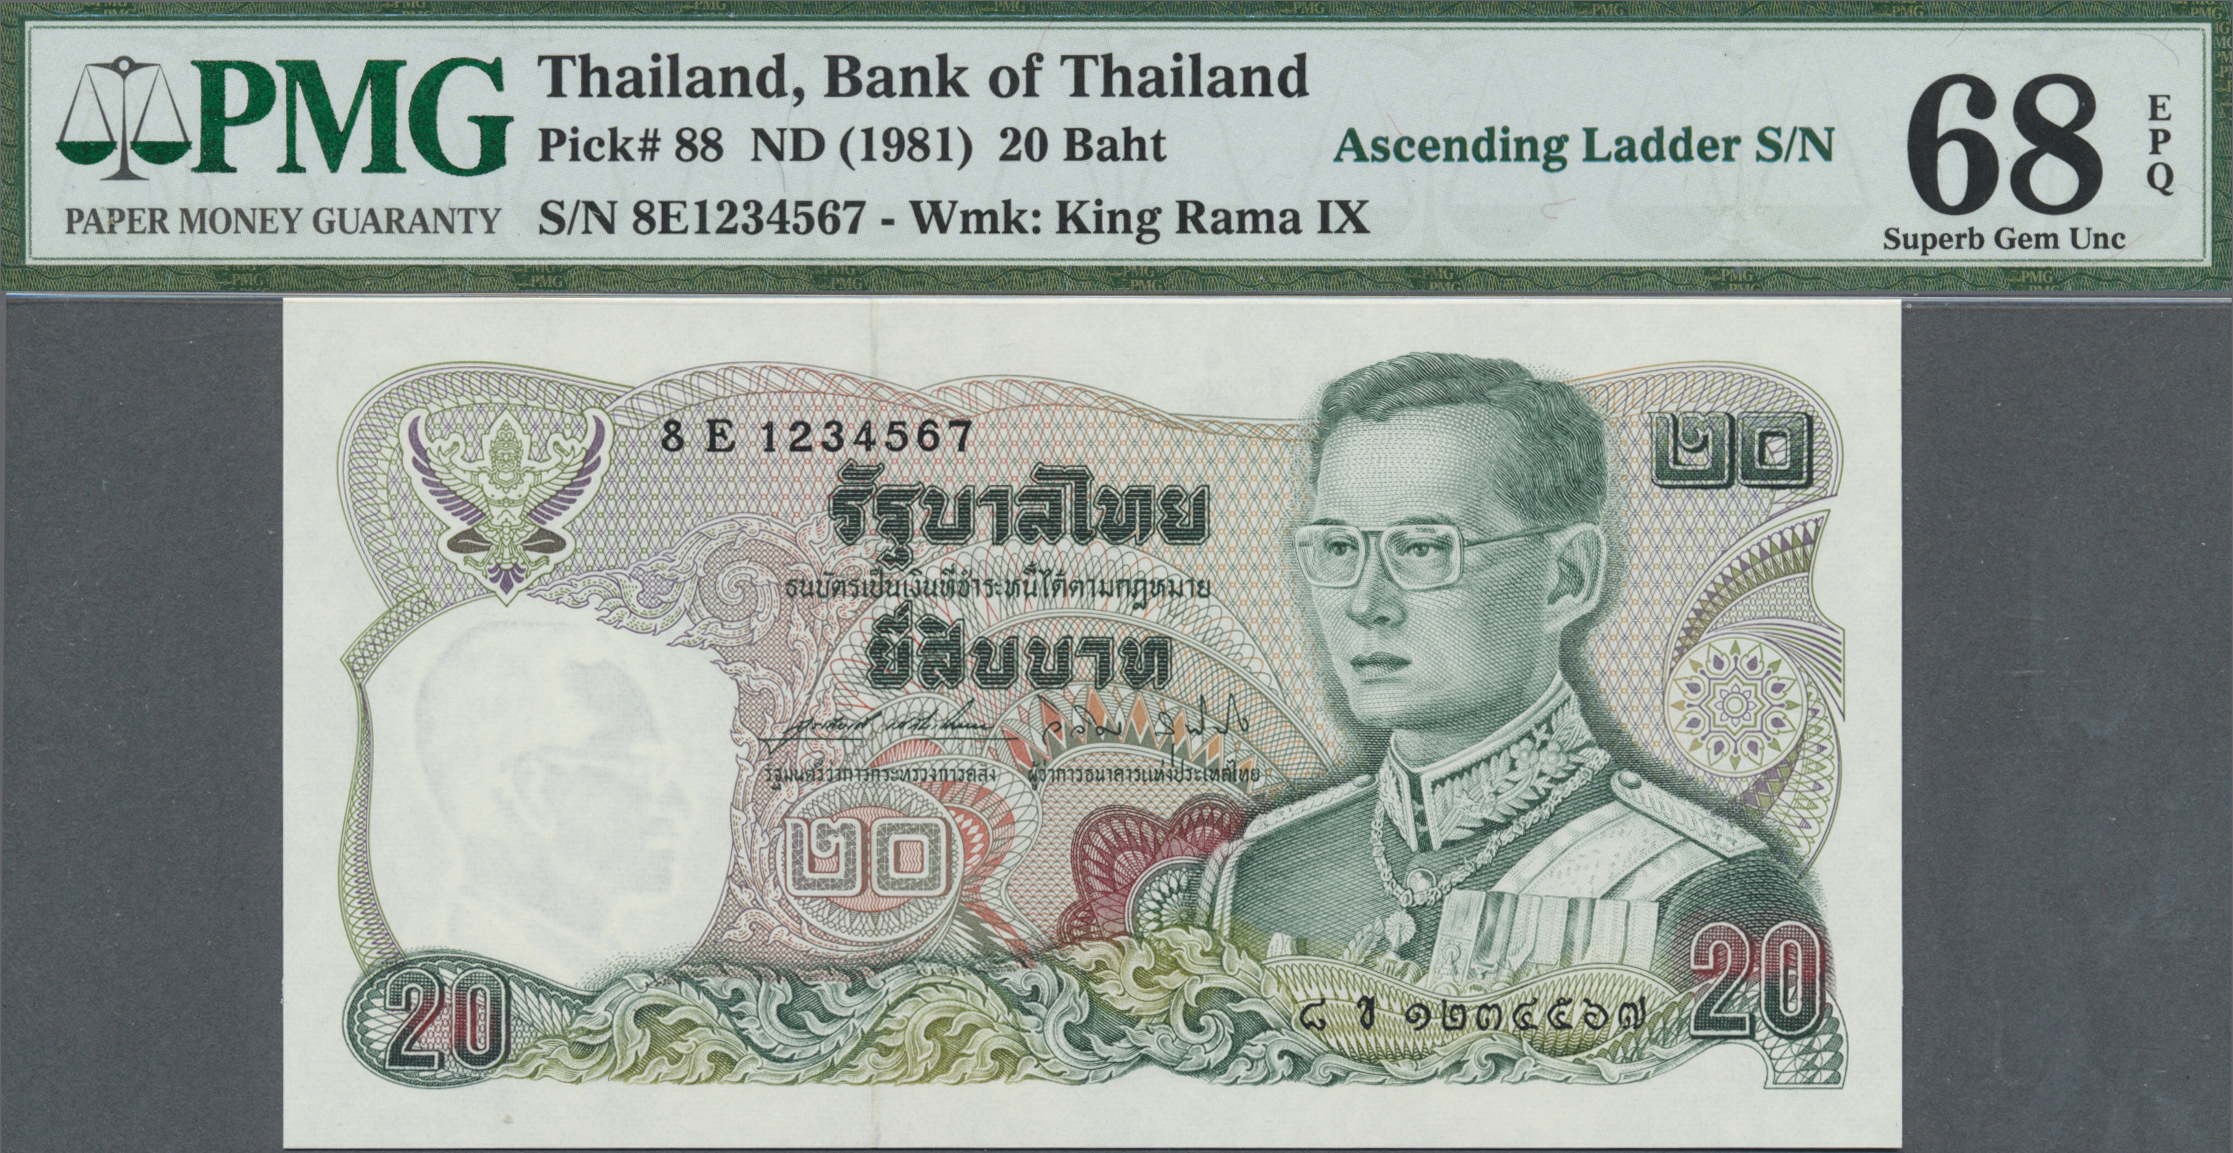 Lot 2014 - Thailand   Banknoten  -  Auktionshaus Christoph Gärtner GmbH & Co. KG Banknotes & Coins Auction #39 Day 2